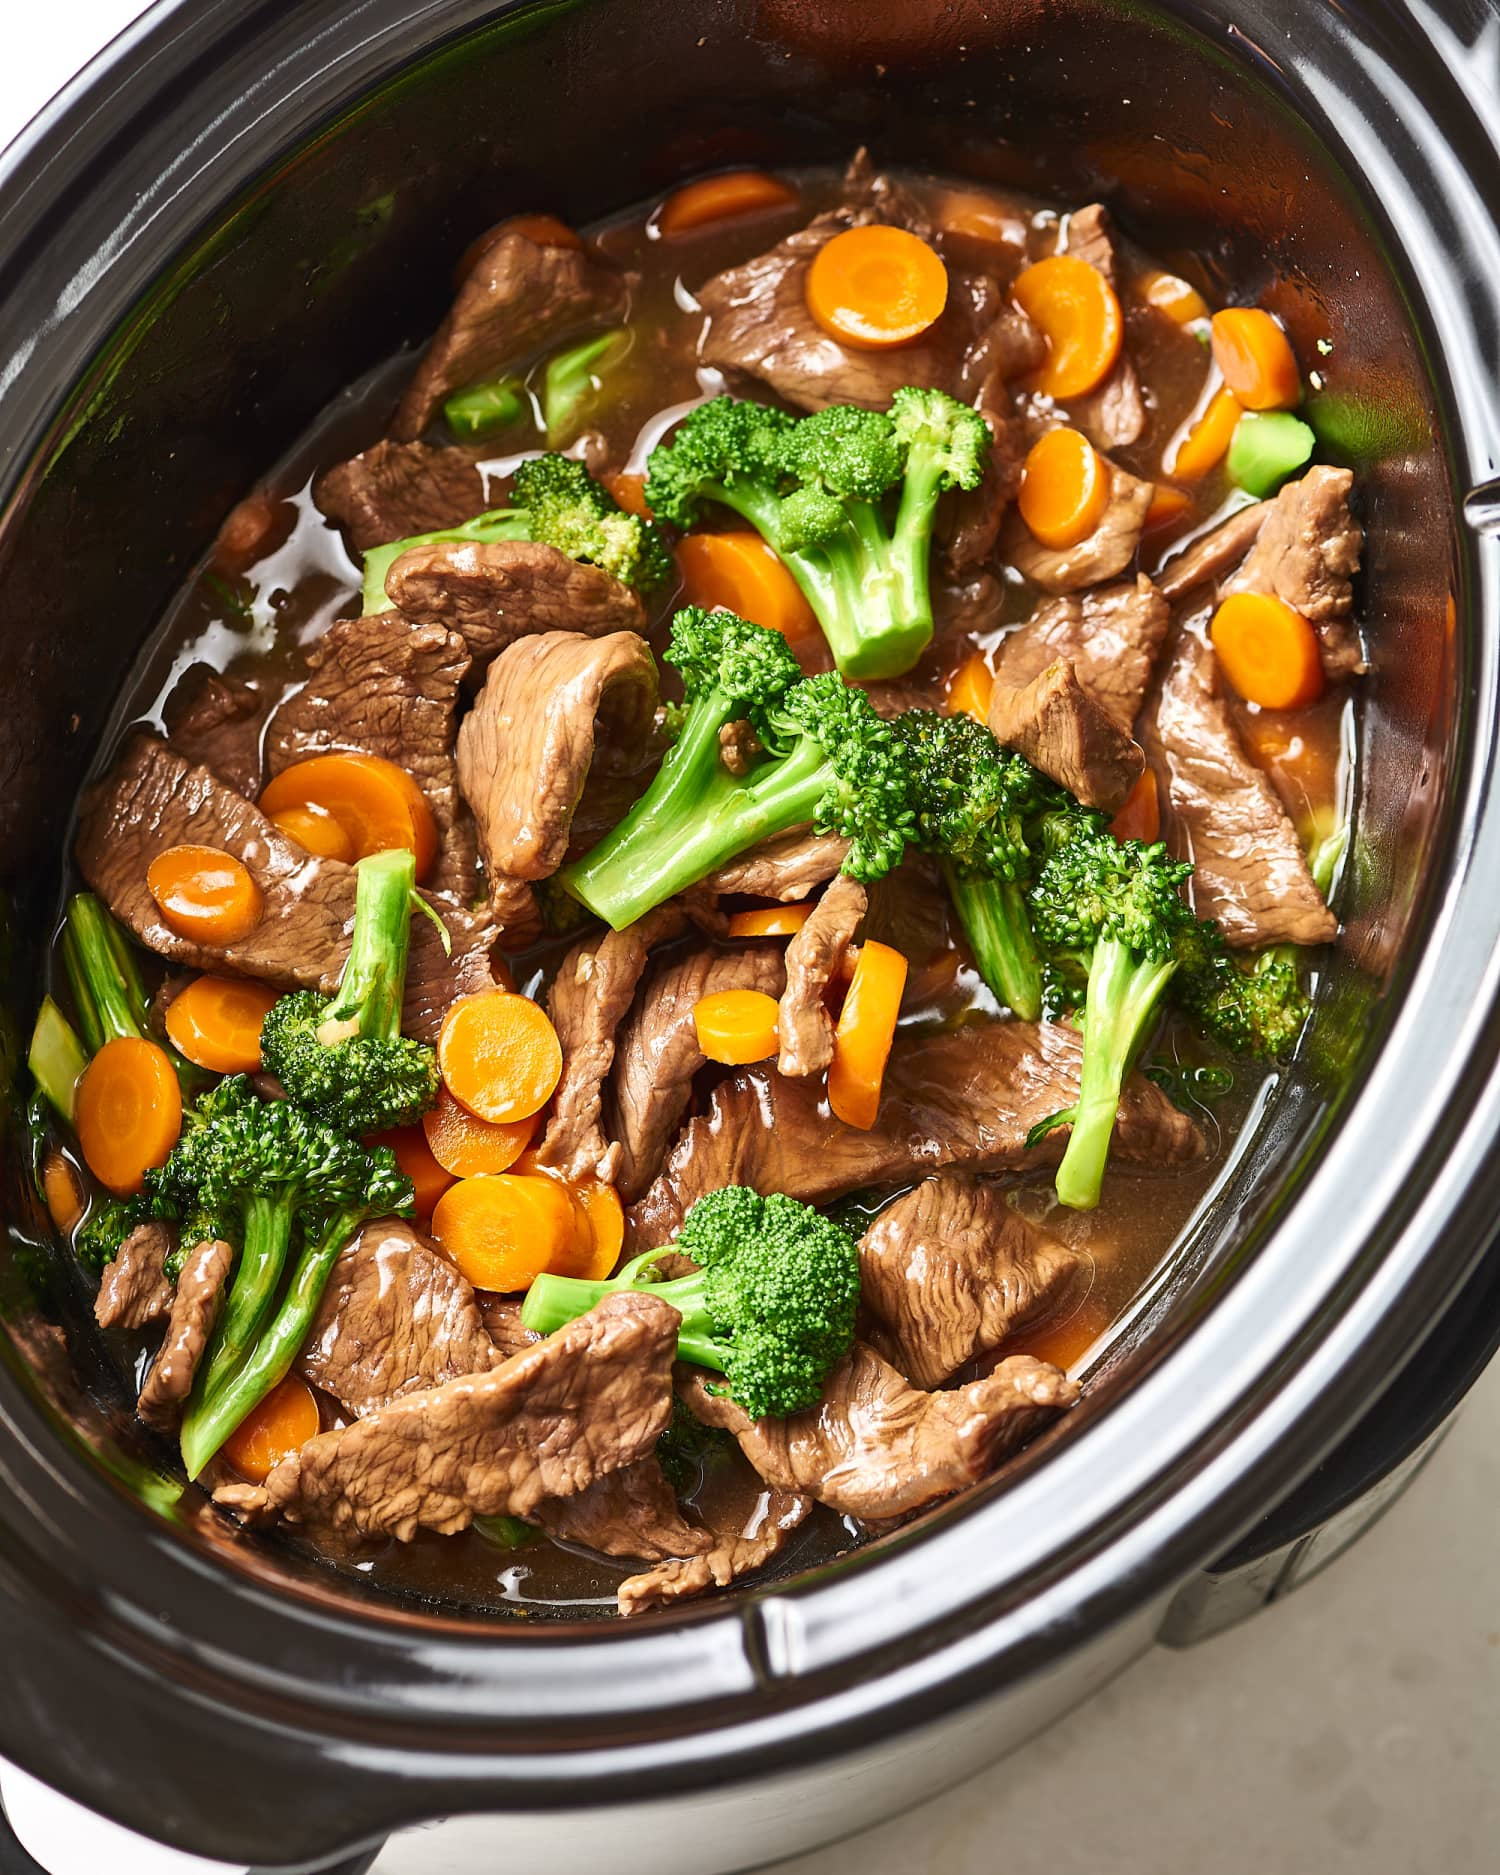 Slow Cooker Beef Pot Roast: How To Make Better-than-Takeout Beef And Broccoli In The